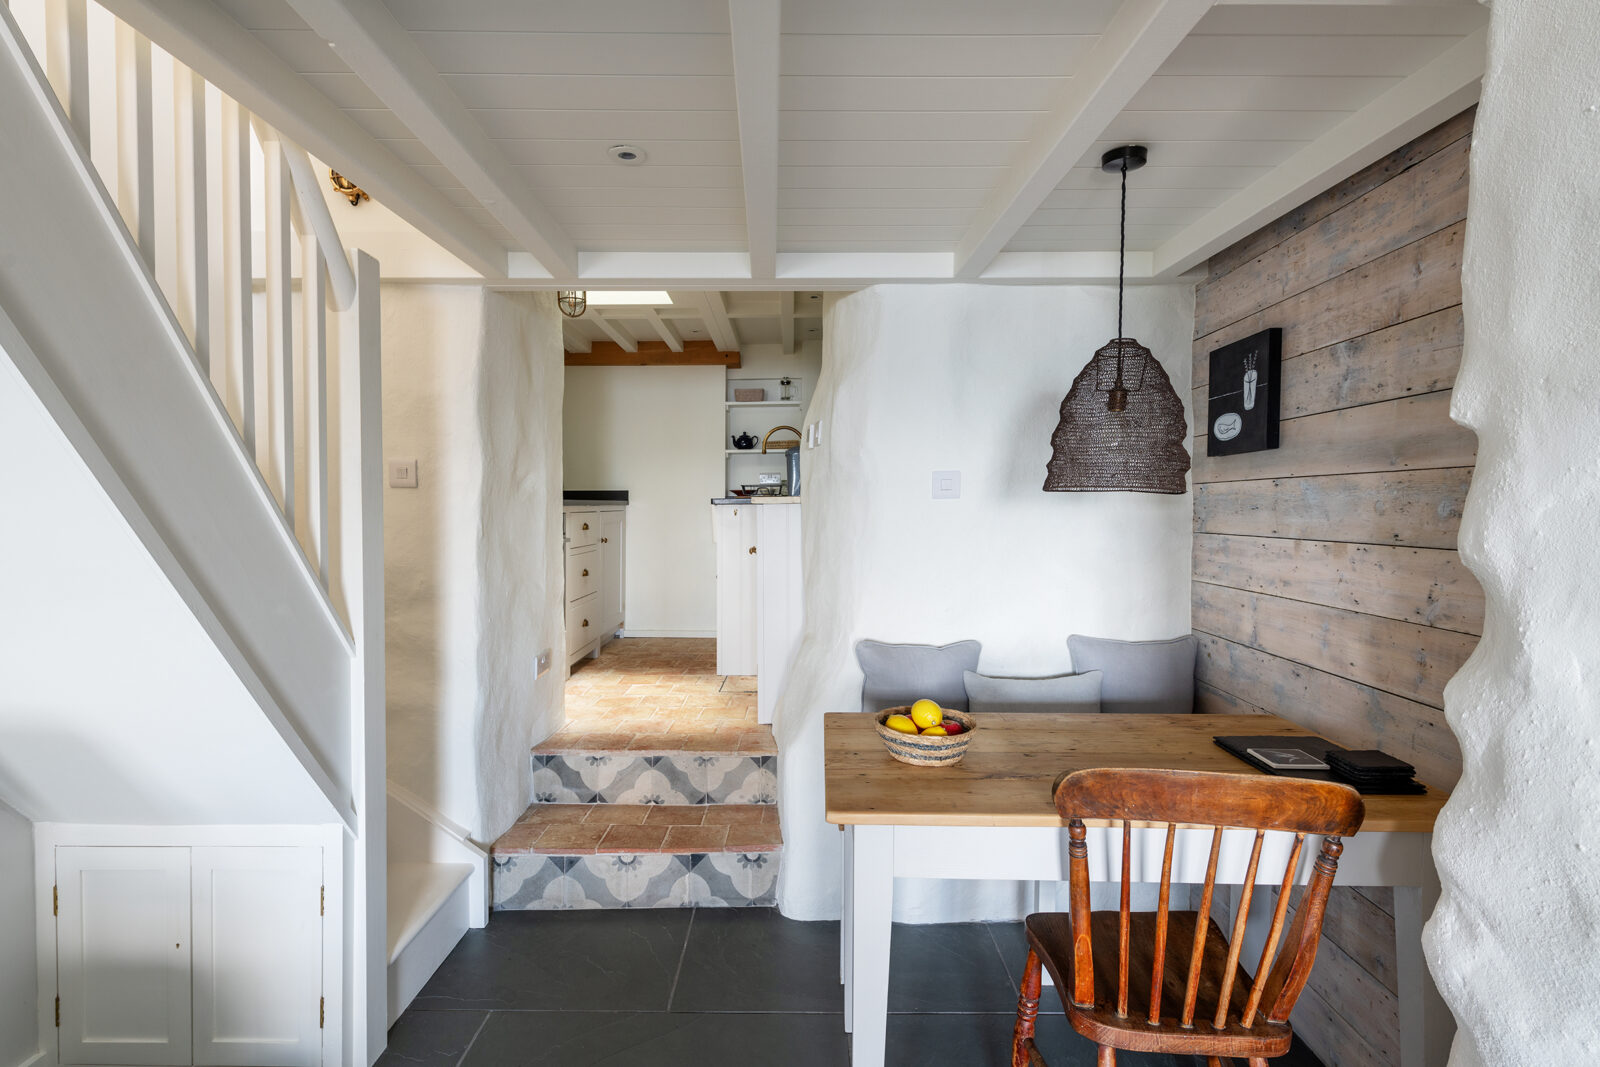 The ground floor is largely open plan, comprising the living room, dining nook and galley kitchen